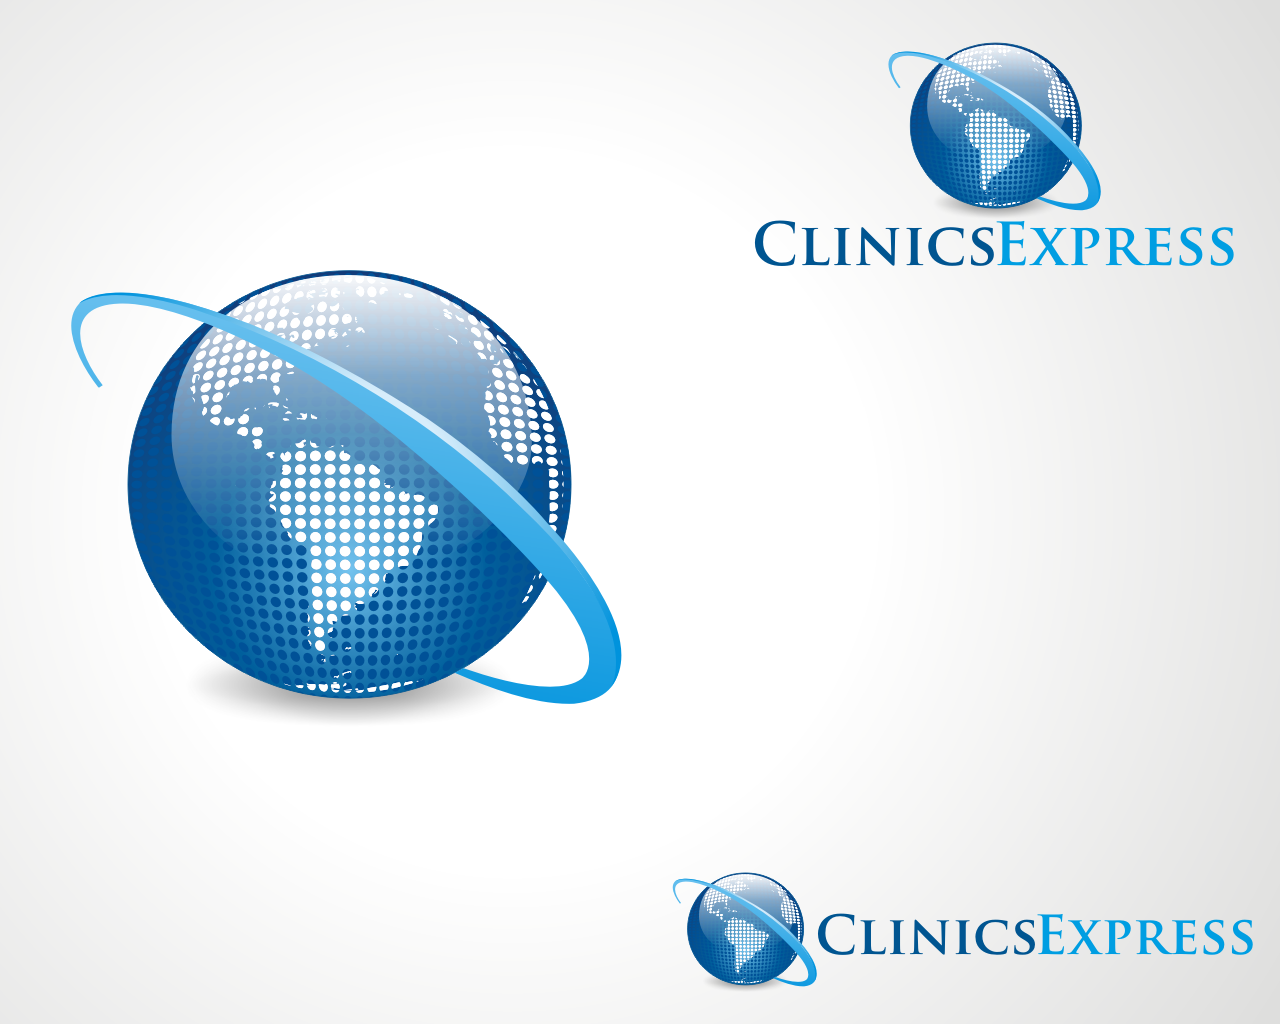 Create the next logo for CLINICSEXPRESS